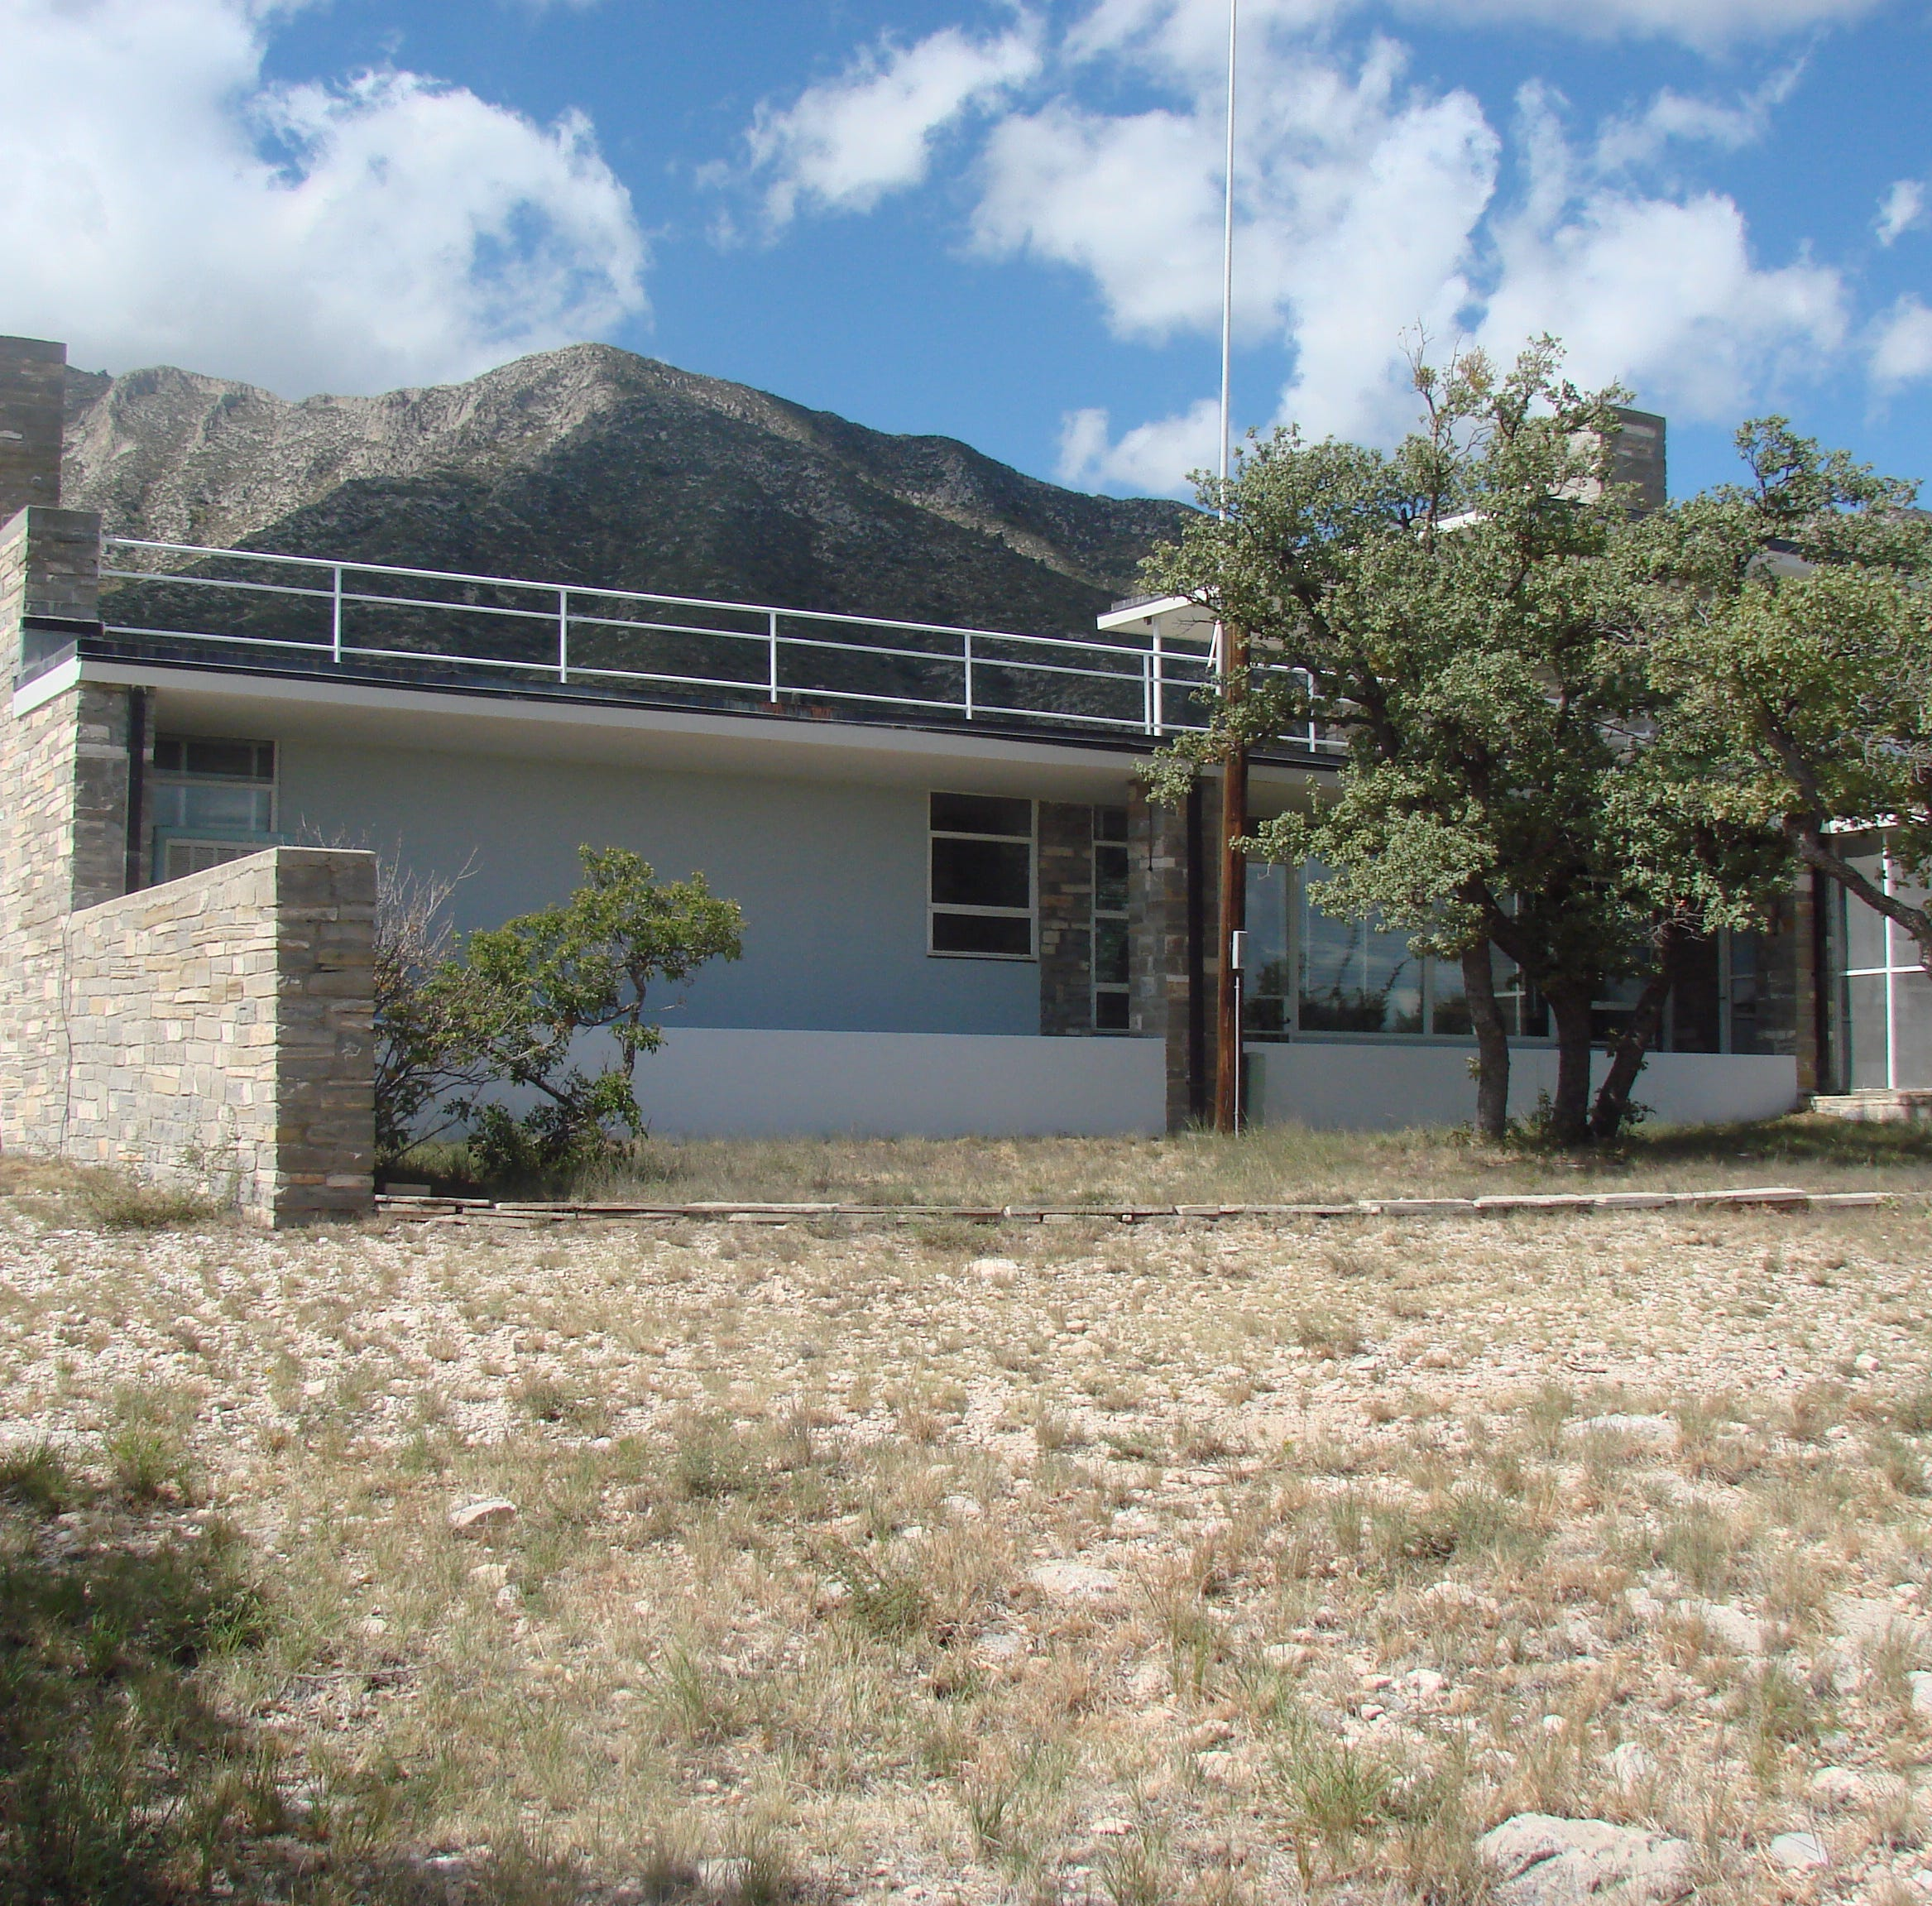 An historic house owned by the late Wallace Pratt, known as Ship on the Desert, stands in Guadalupe Mountains National Park.